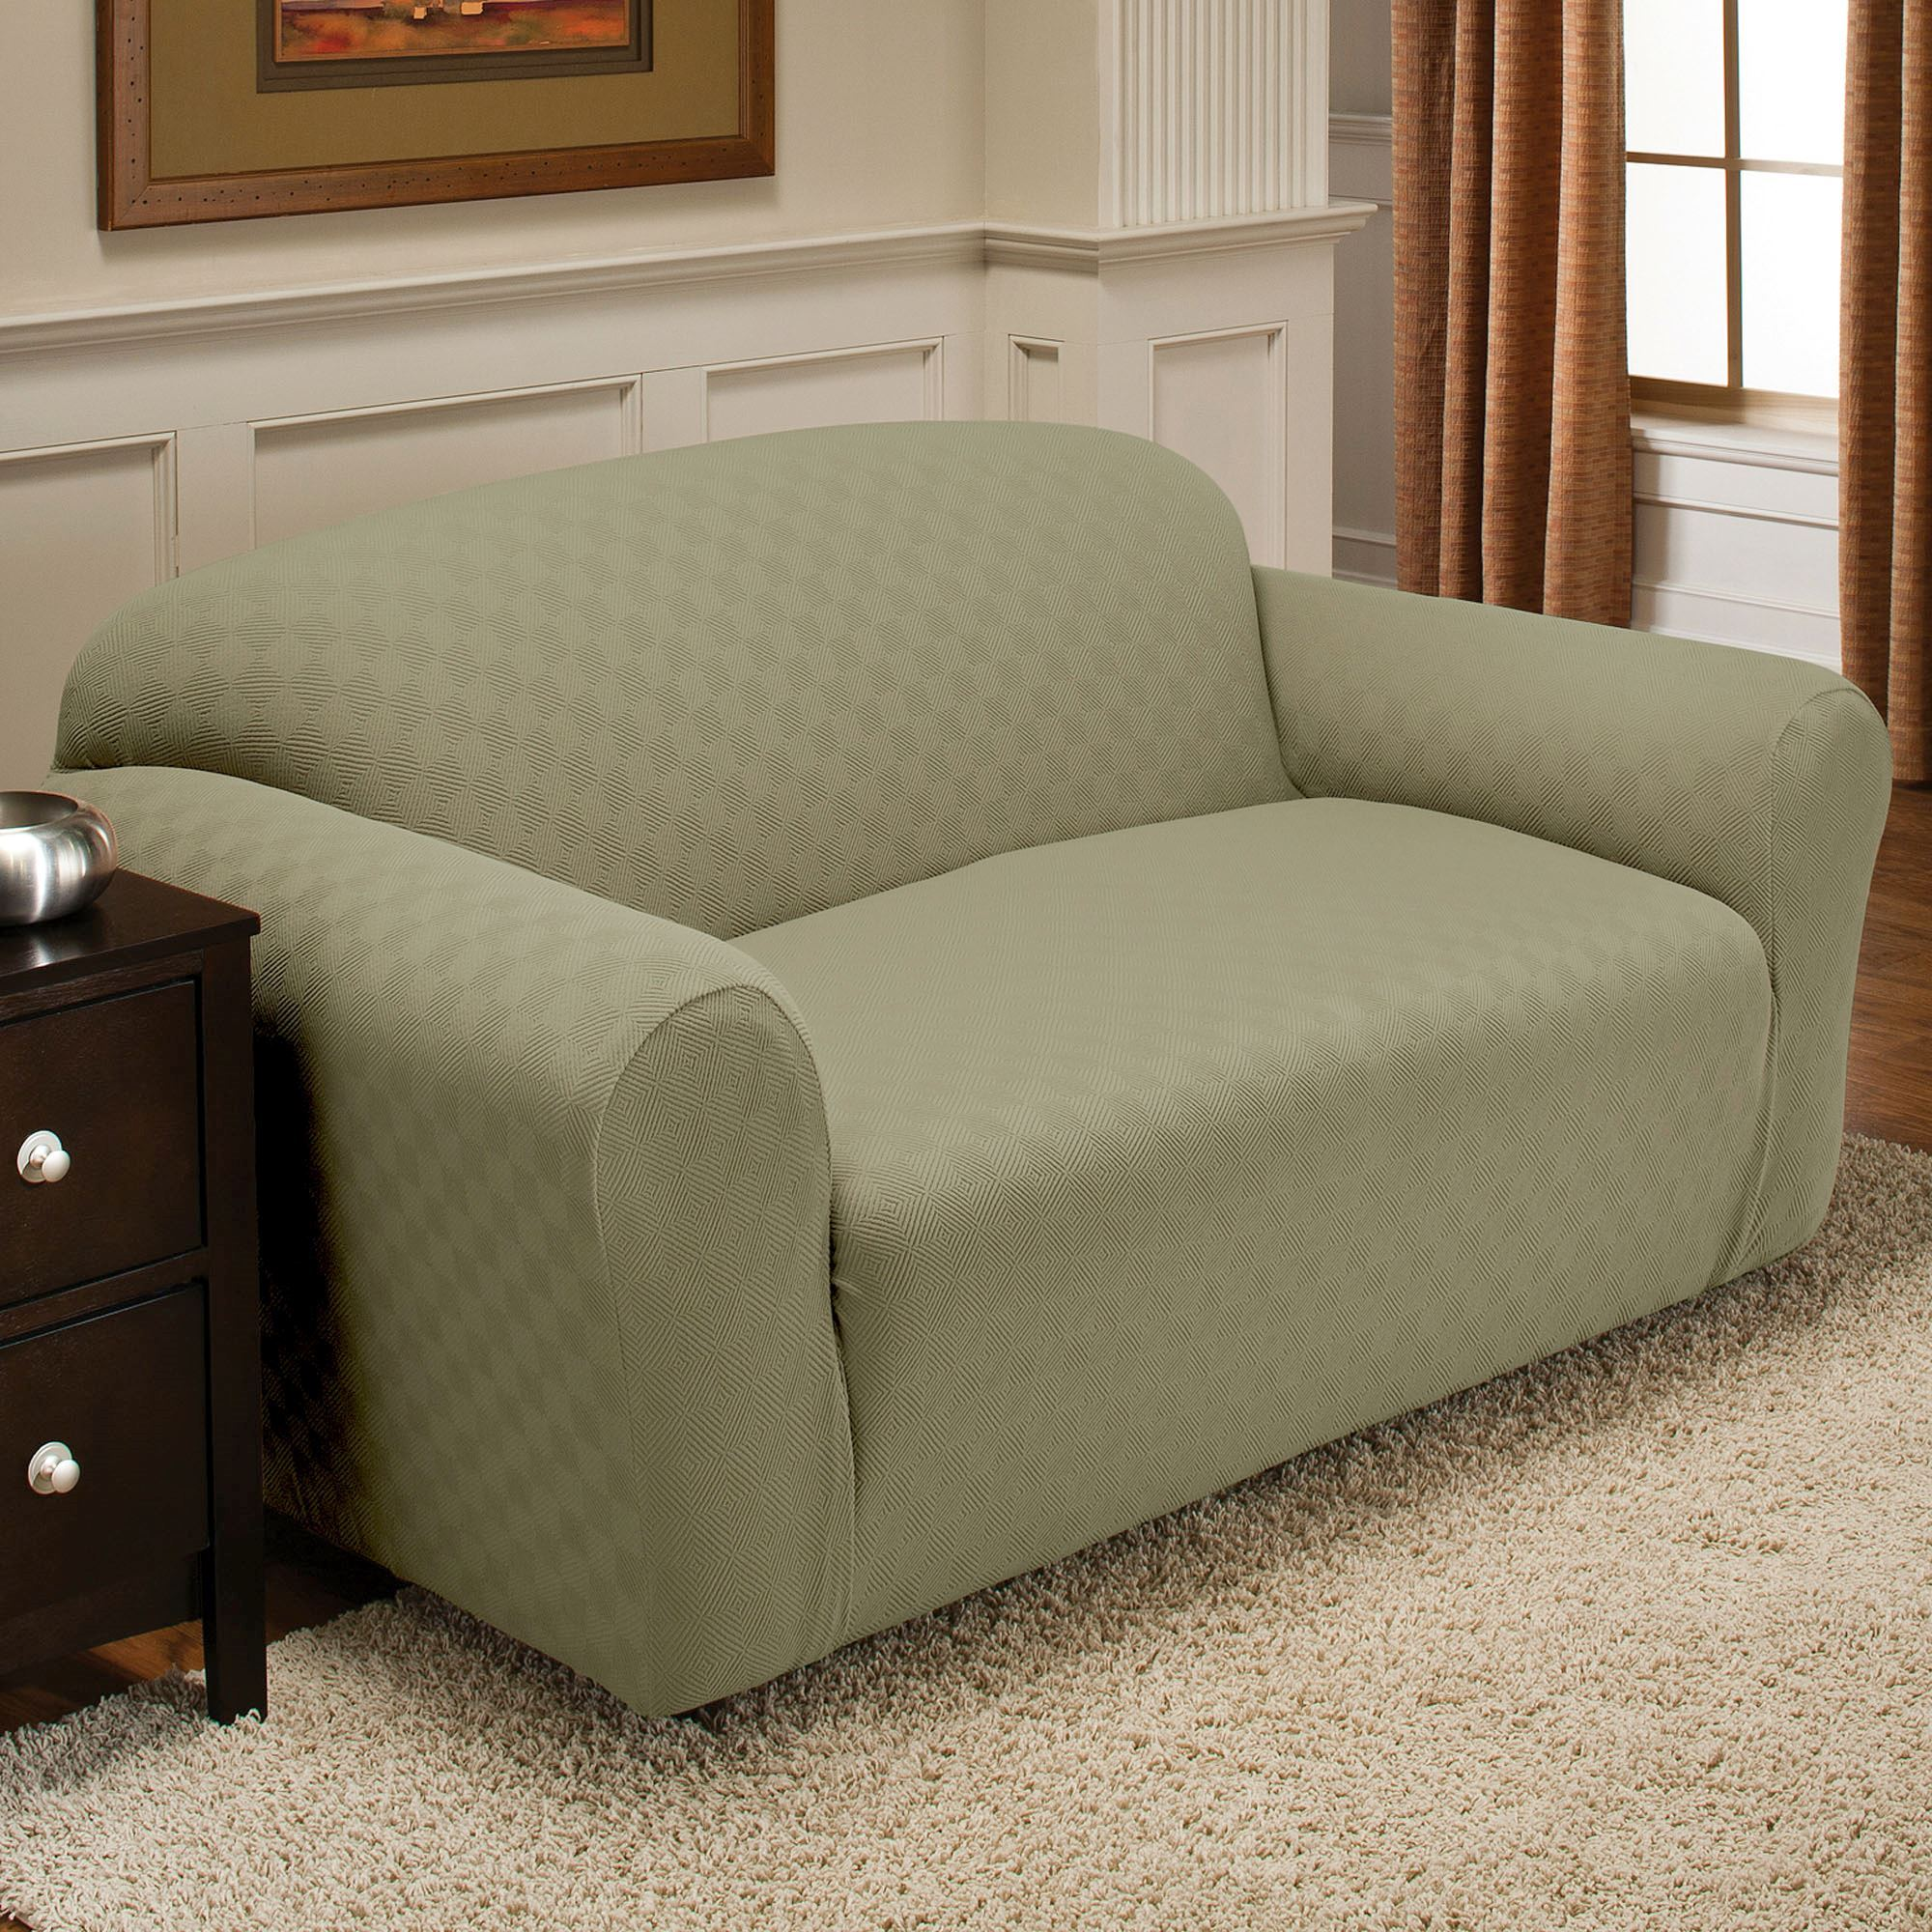 Sofa Slipcovers Newport Stretch Loveseat Slipcovers